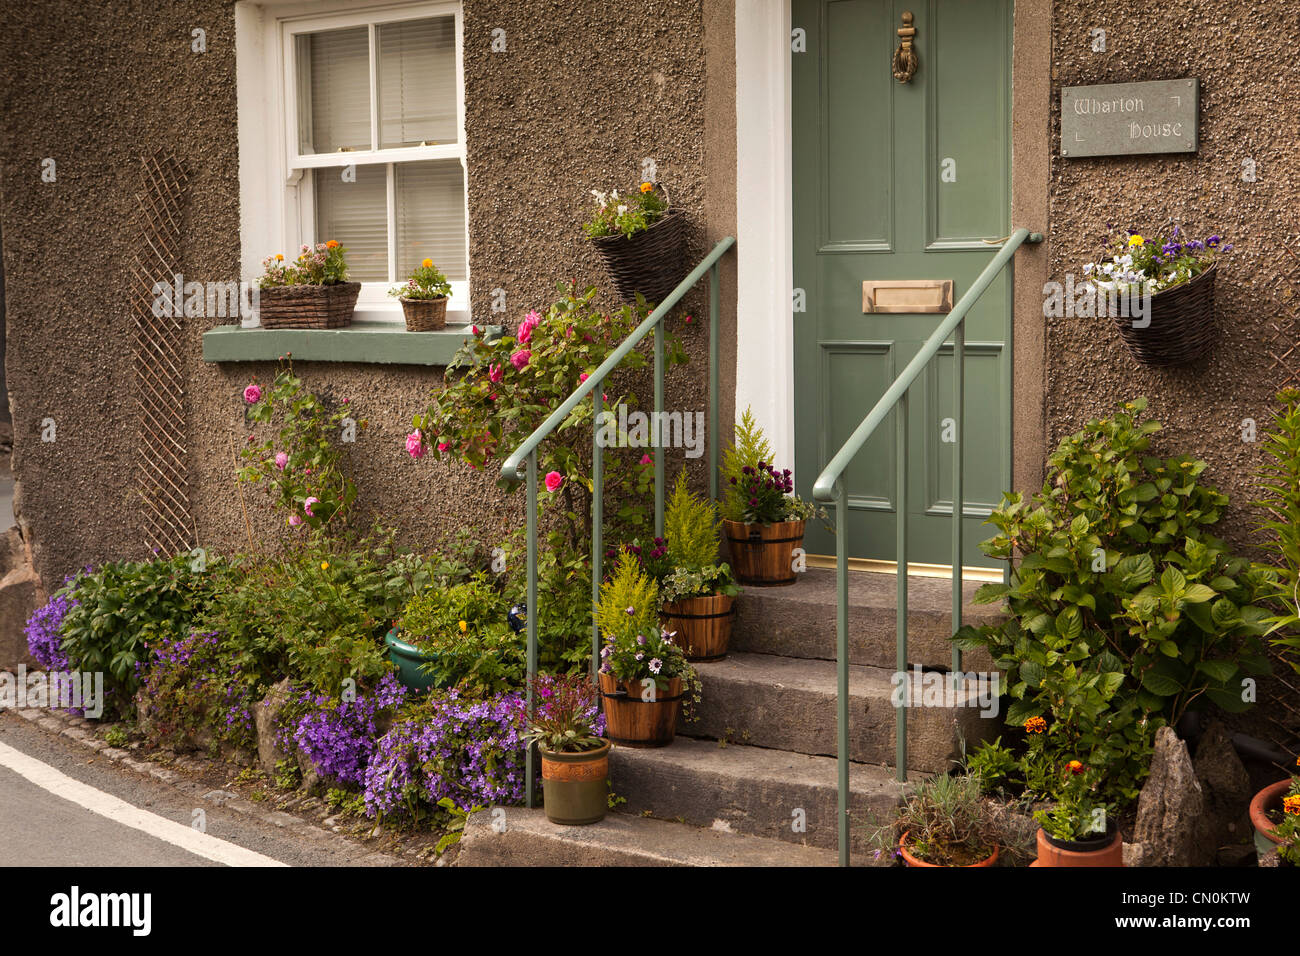 uk cumbria cartmel very small front garden in flower